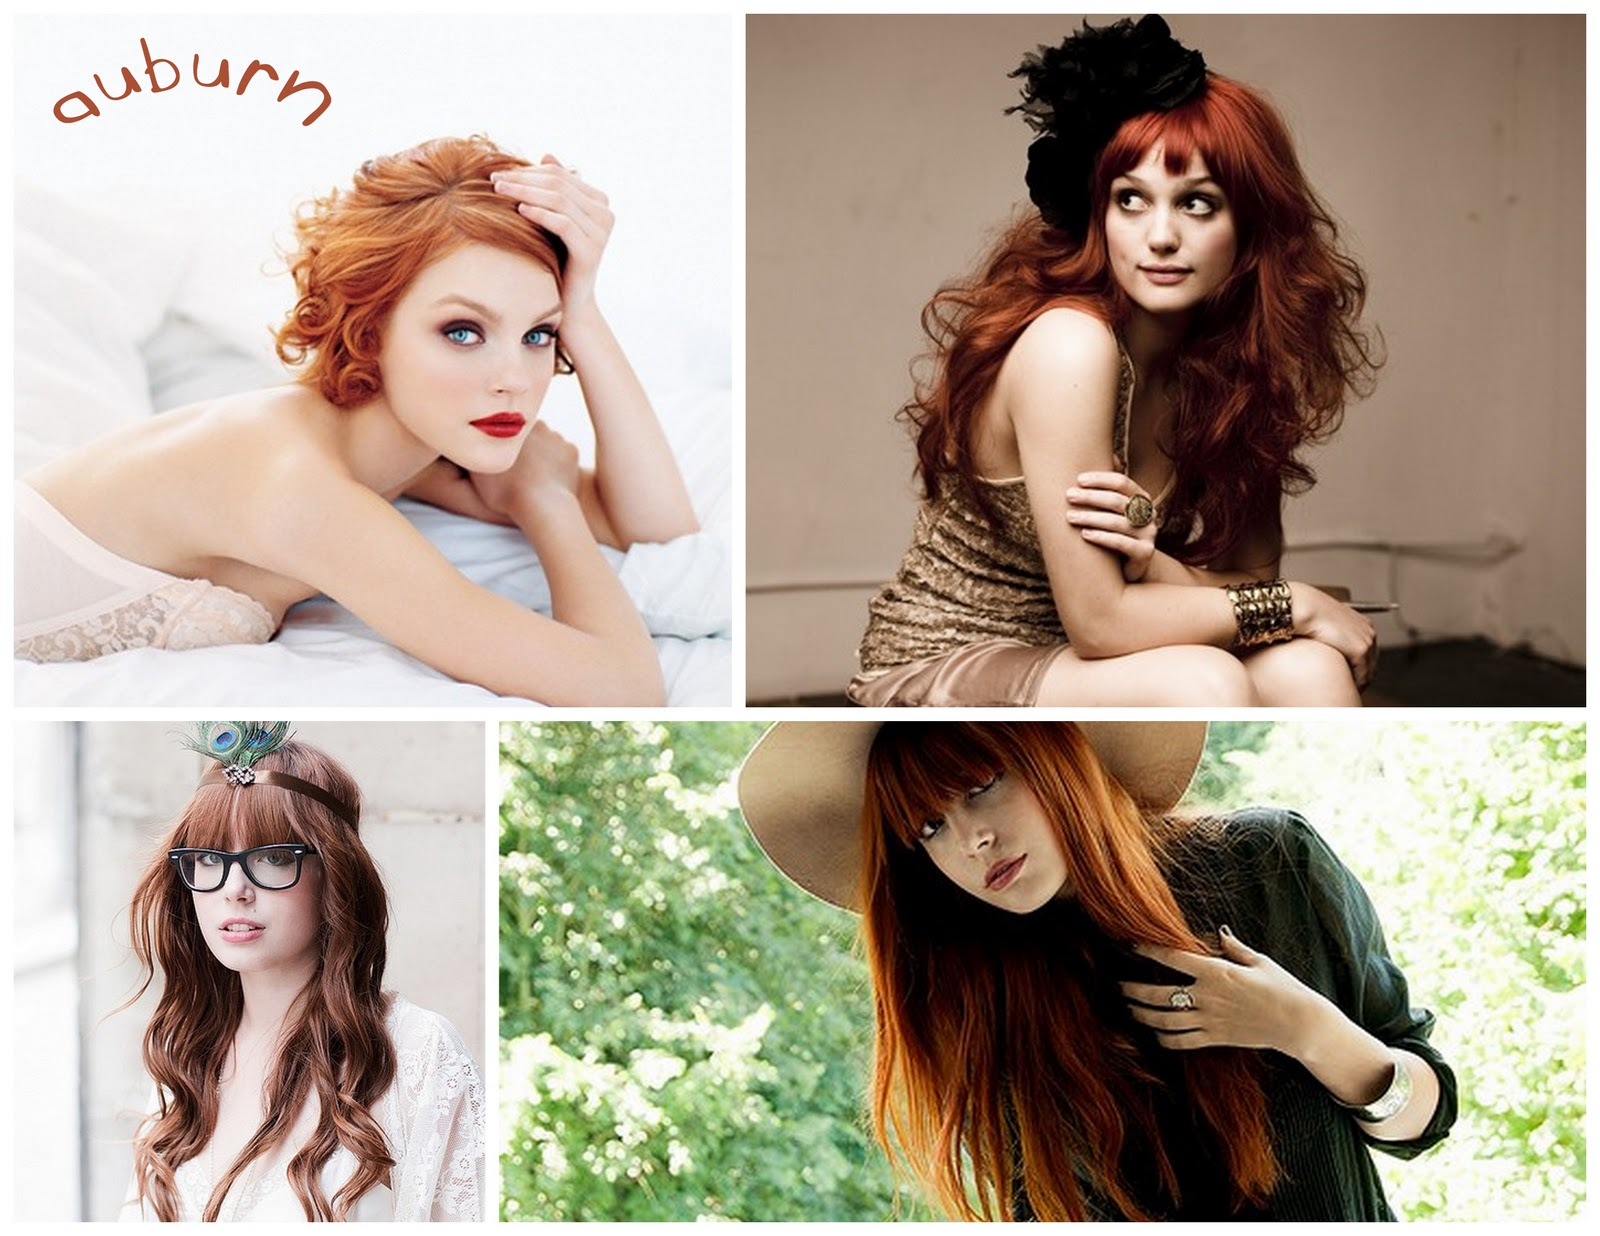 http://1.bp.blogspot.com/-IjMgYQII3K4/Tx40AvjiuLI/AAAAAAAACh4/BP-lebDE_Ck/s1600/red+hair+collage2.jpg